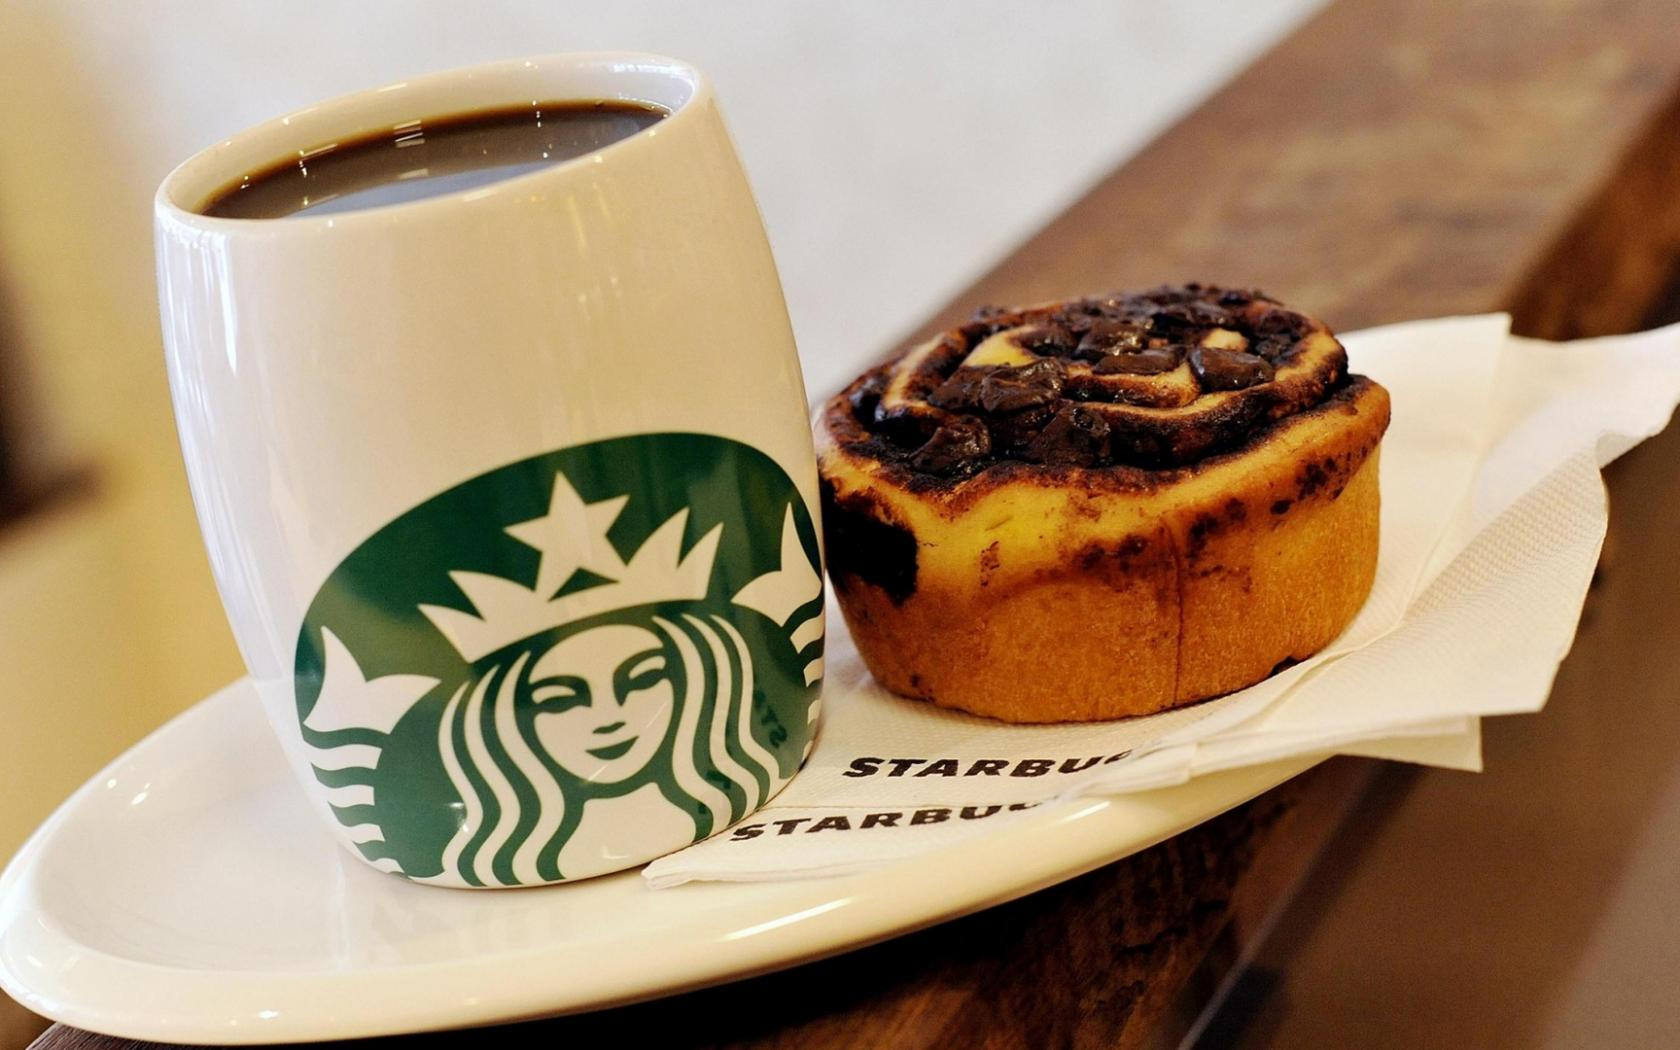 Cute Cake Images Hd : Cute Starbucks and Cake in HD 1080p HD Wallpapers ...